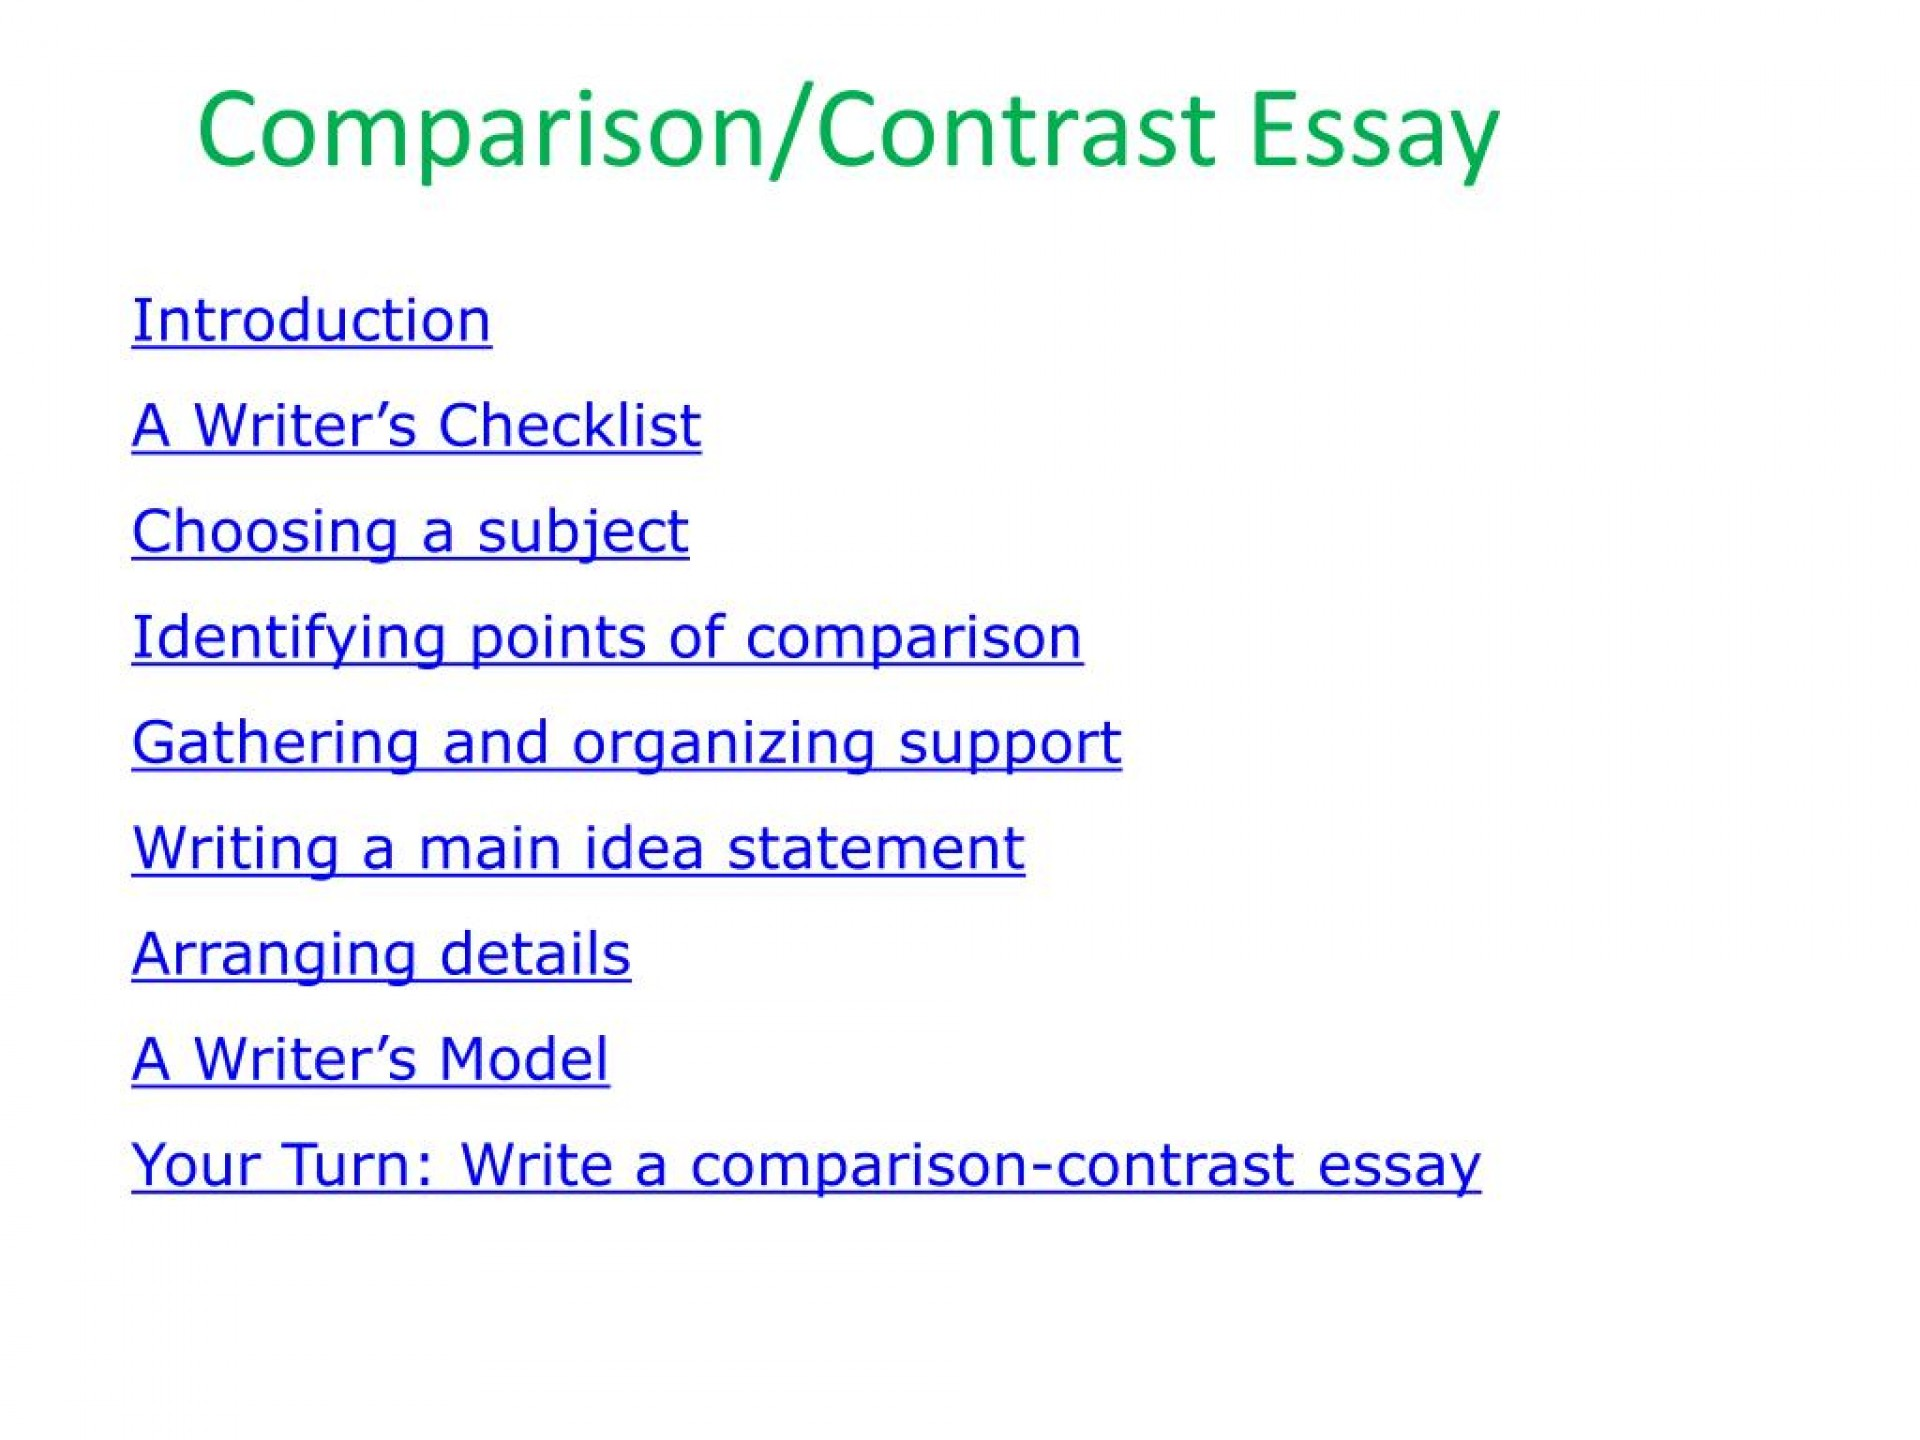 019 Comparison And Contrast Essay L Awful Topics List Thesis Statement Compare Means 1920